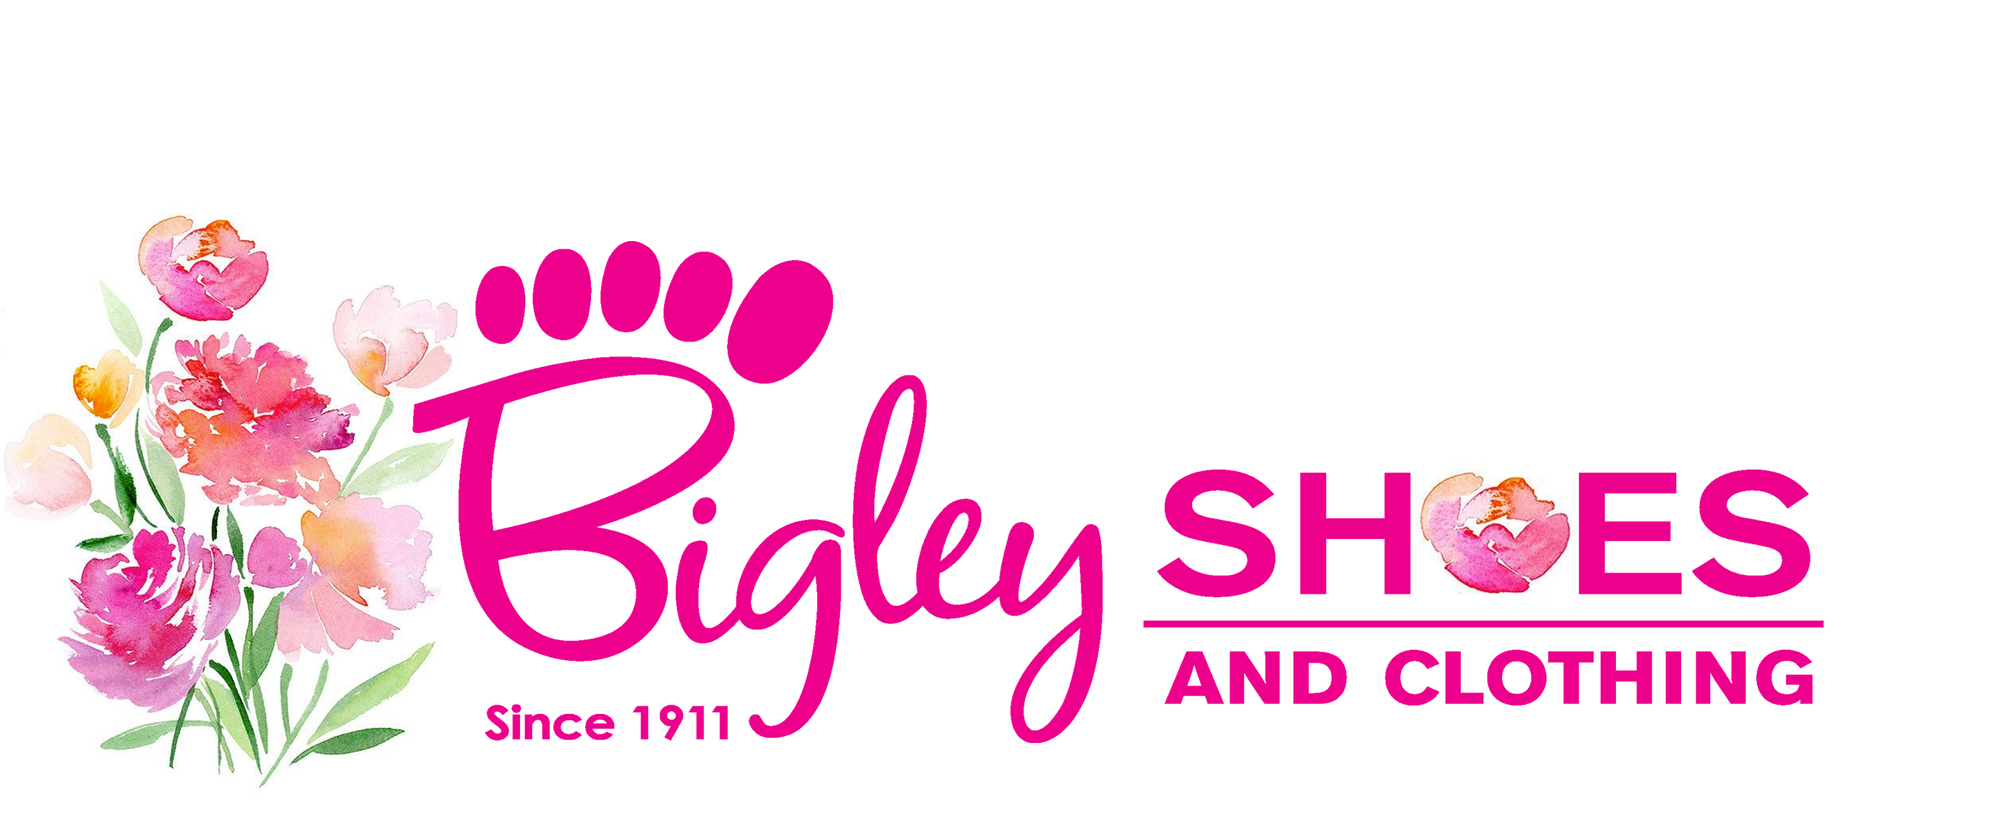 6bc8afbf1 GUMBIES- THE ISLANDER FLIP-FLOPS – Bigley Shoes and Clothing